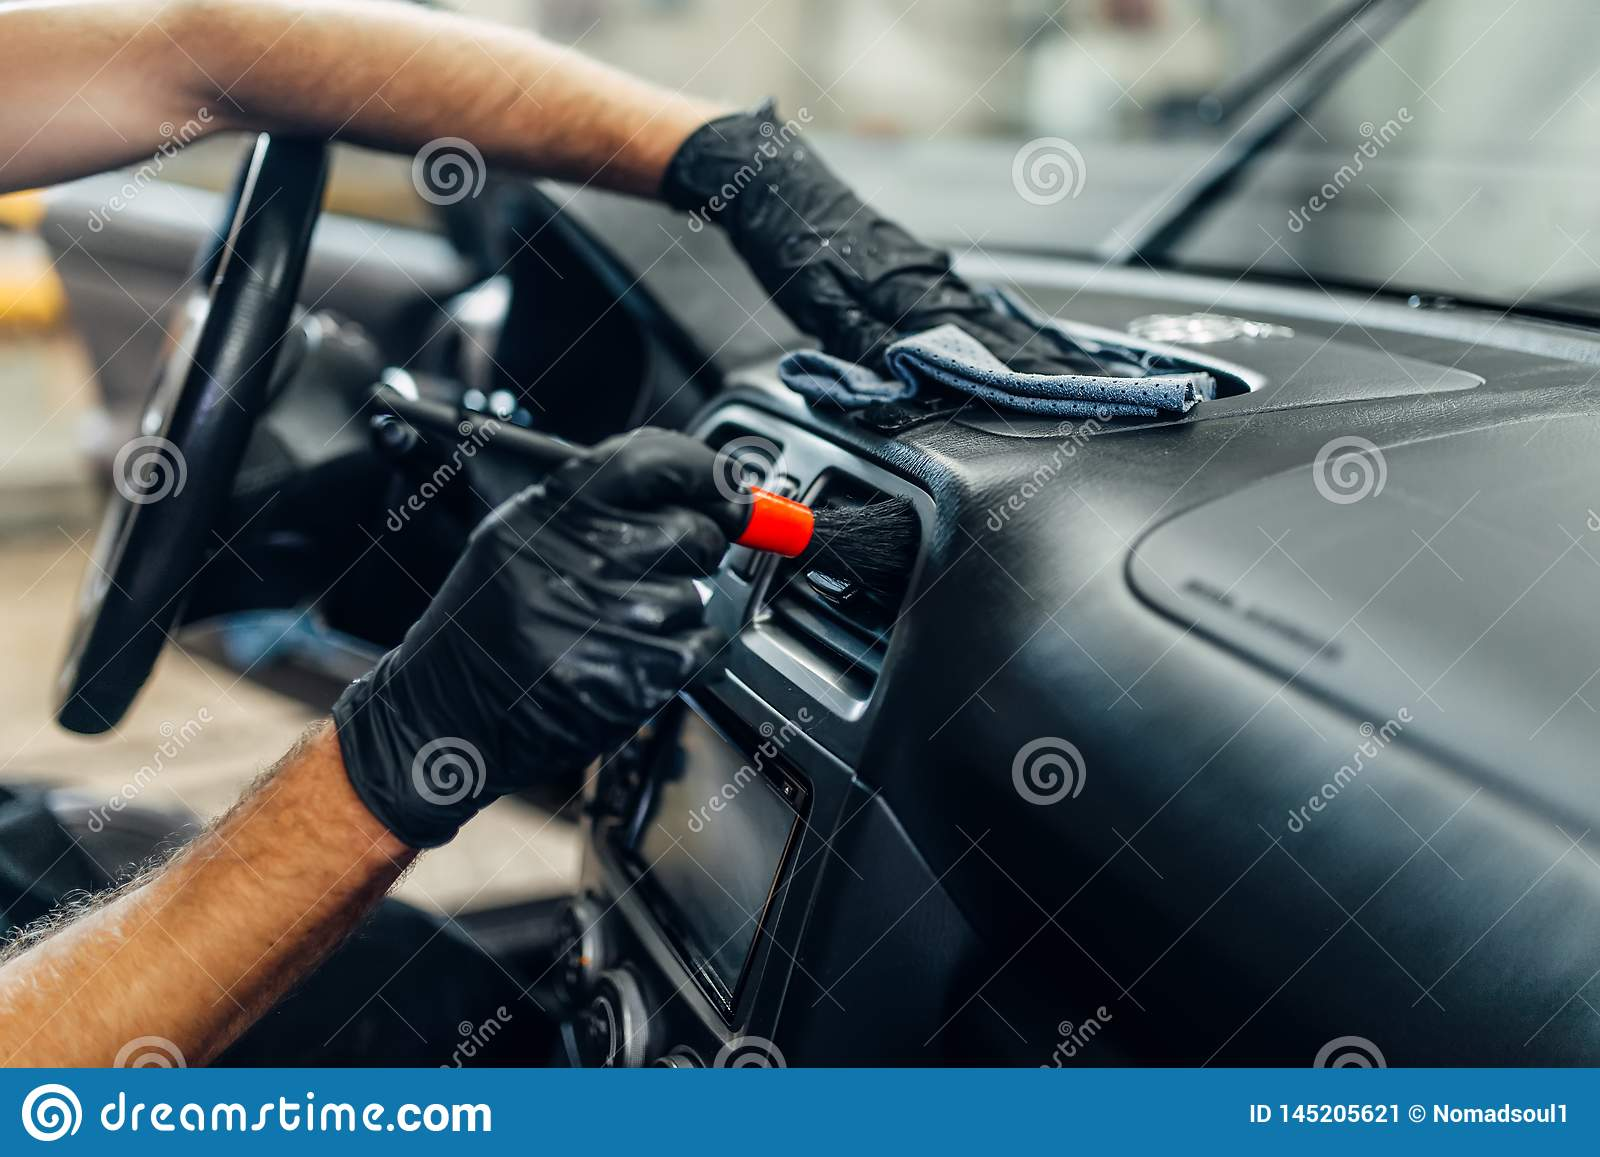 Auto Detailing Of Car Interior On Carwash Service Stock Image - Image of automobile, dirty